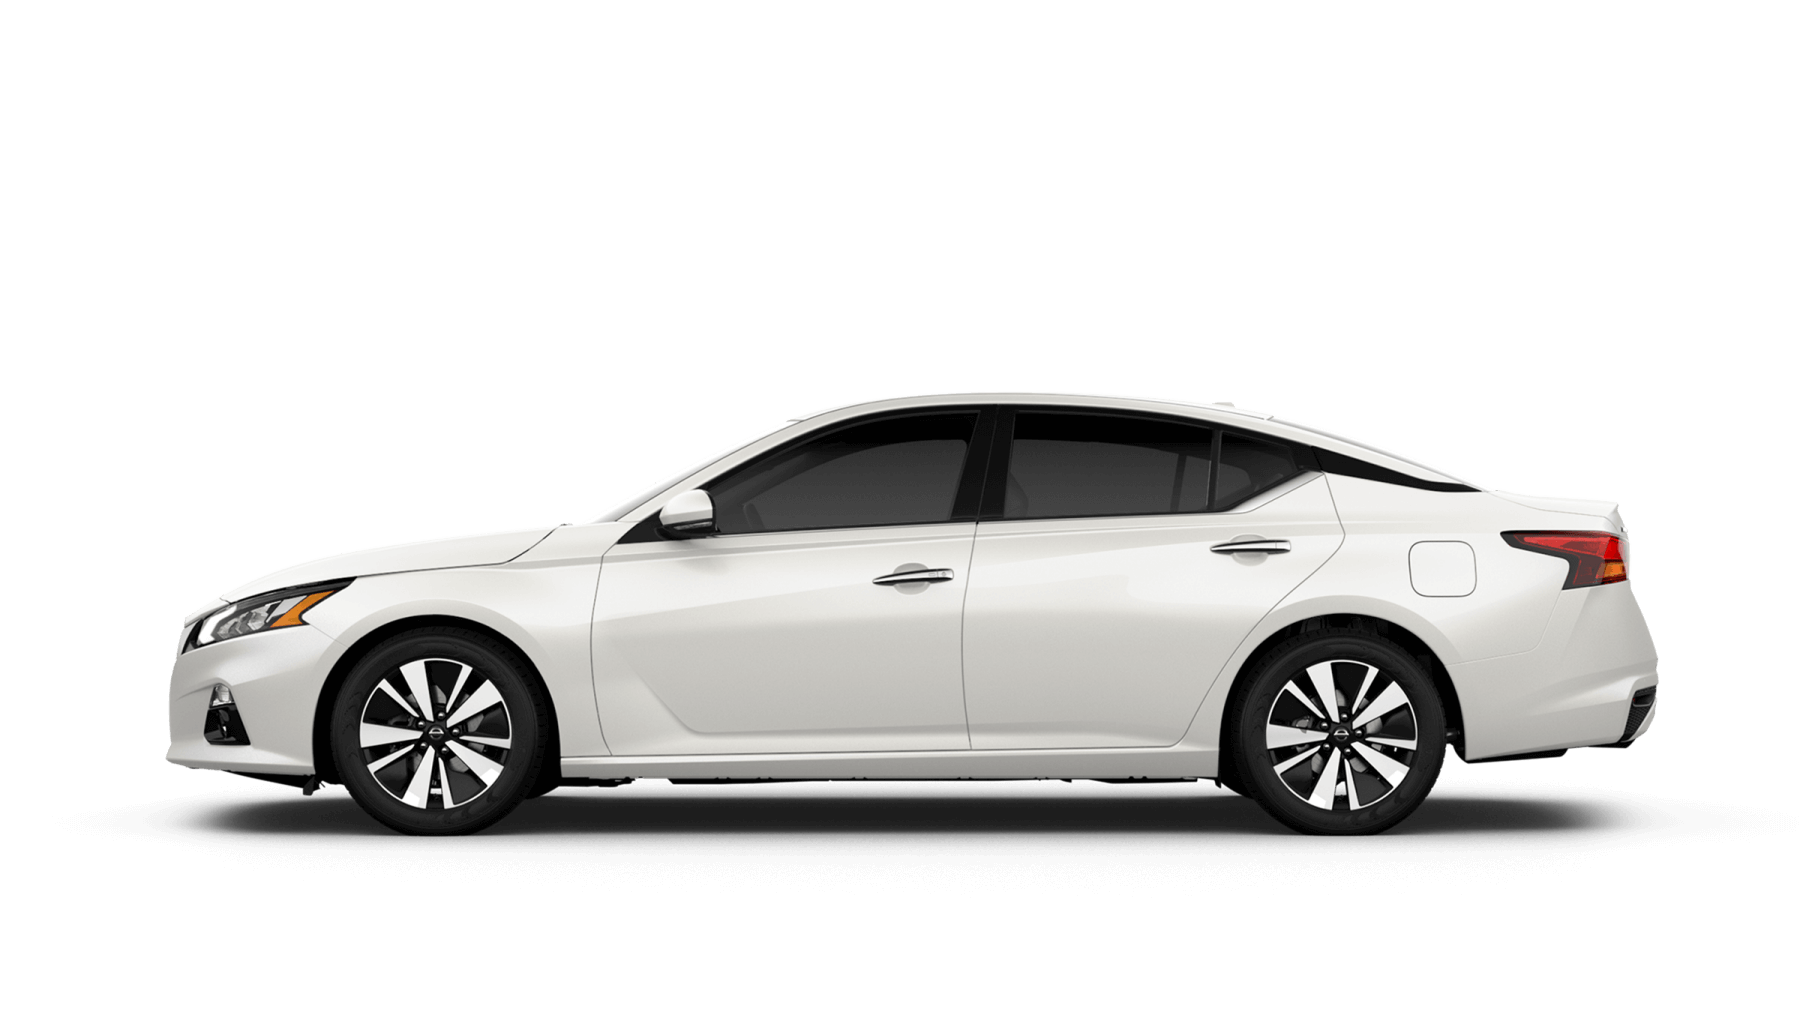 Mount Holly Nissan Altima Nissan